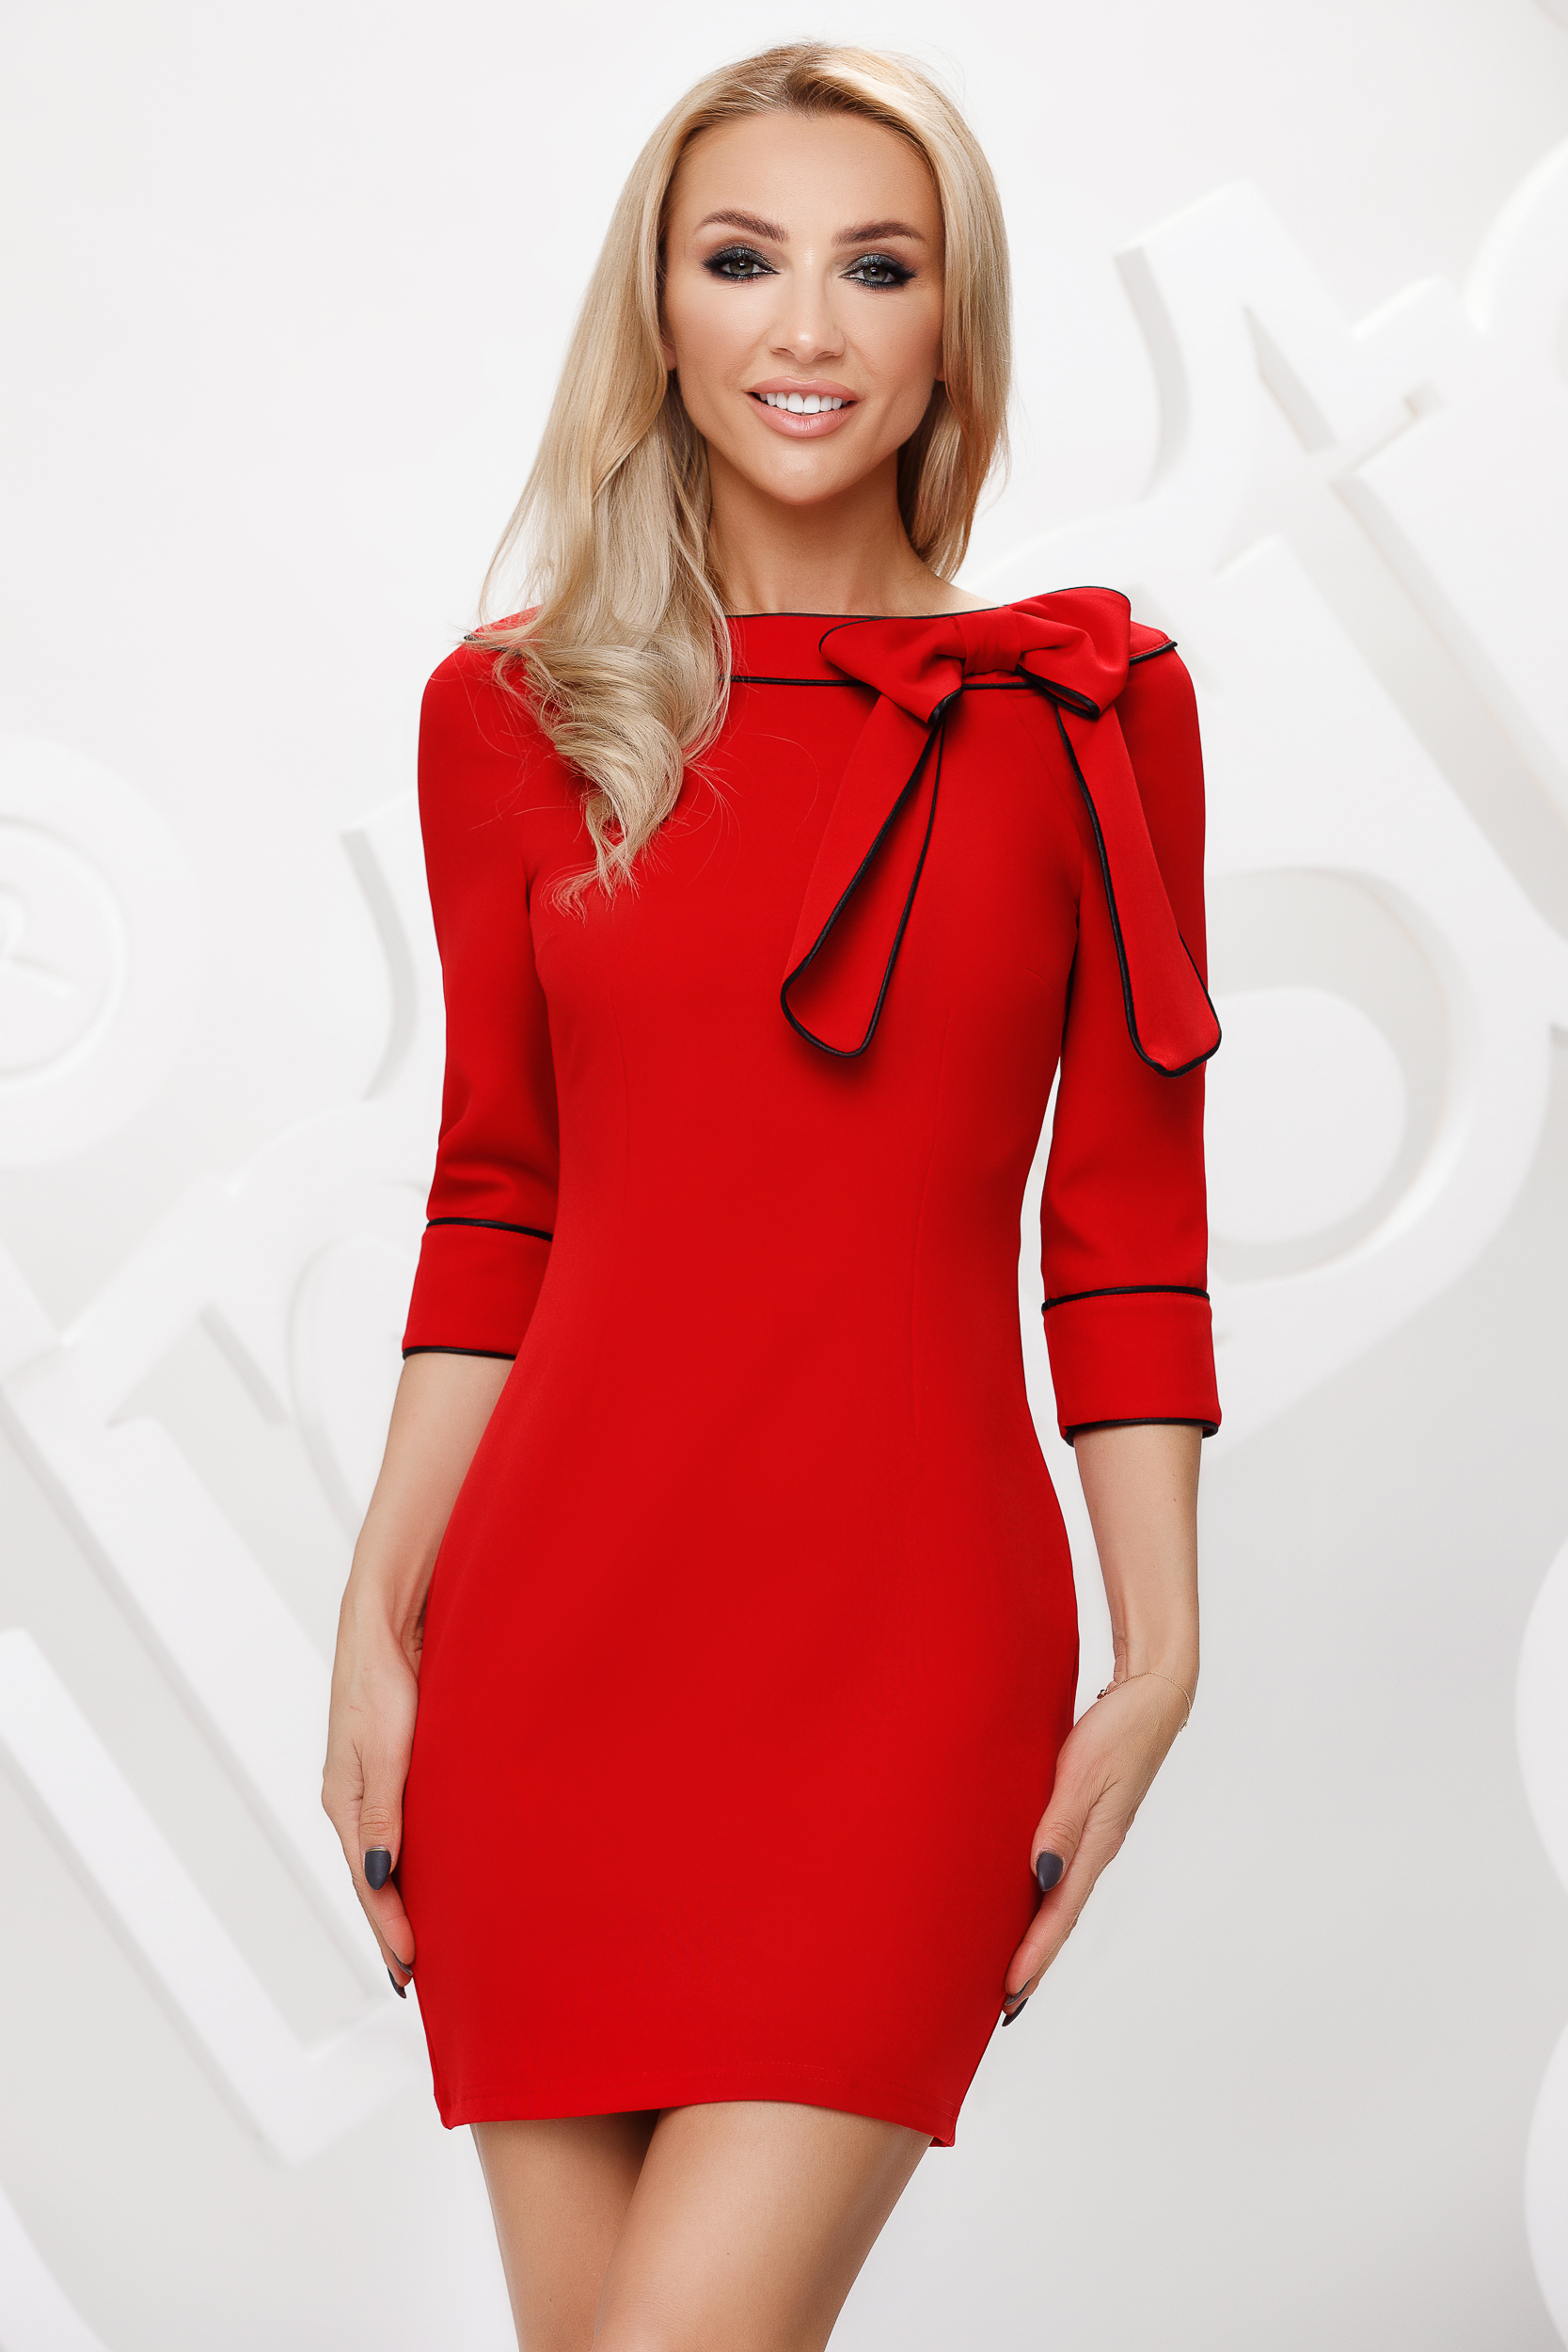 Red dress pencil bow accessory double collar